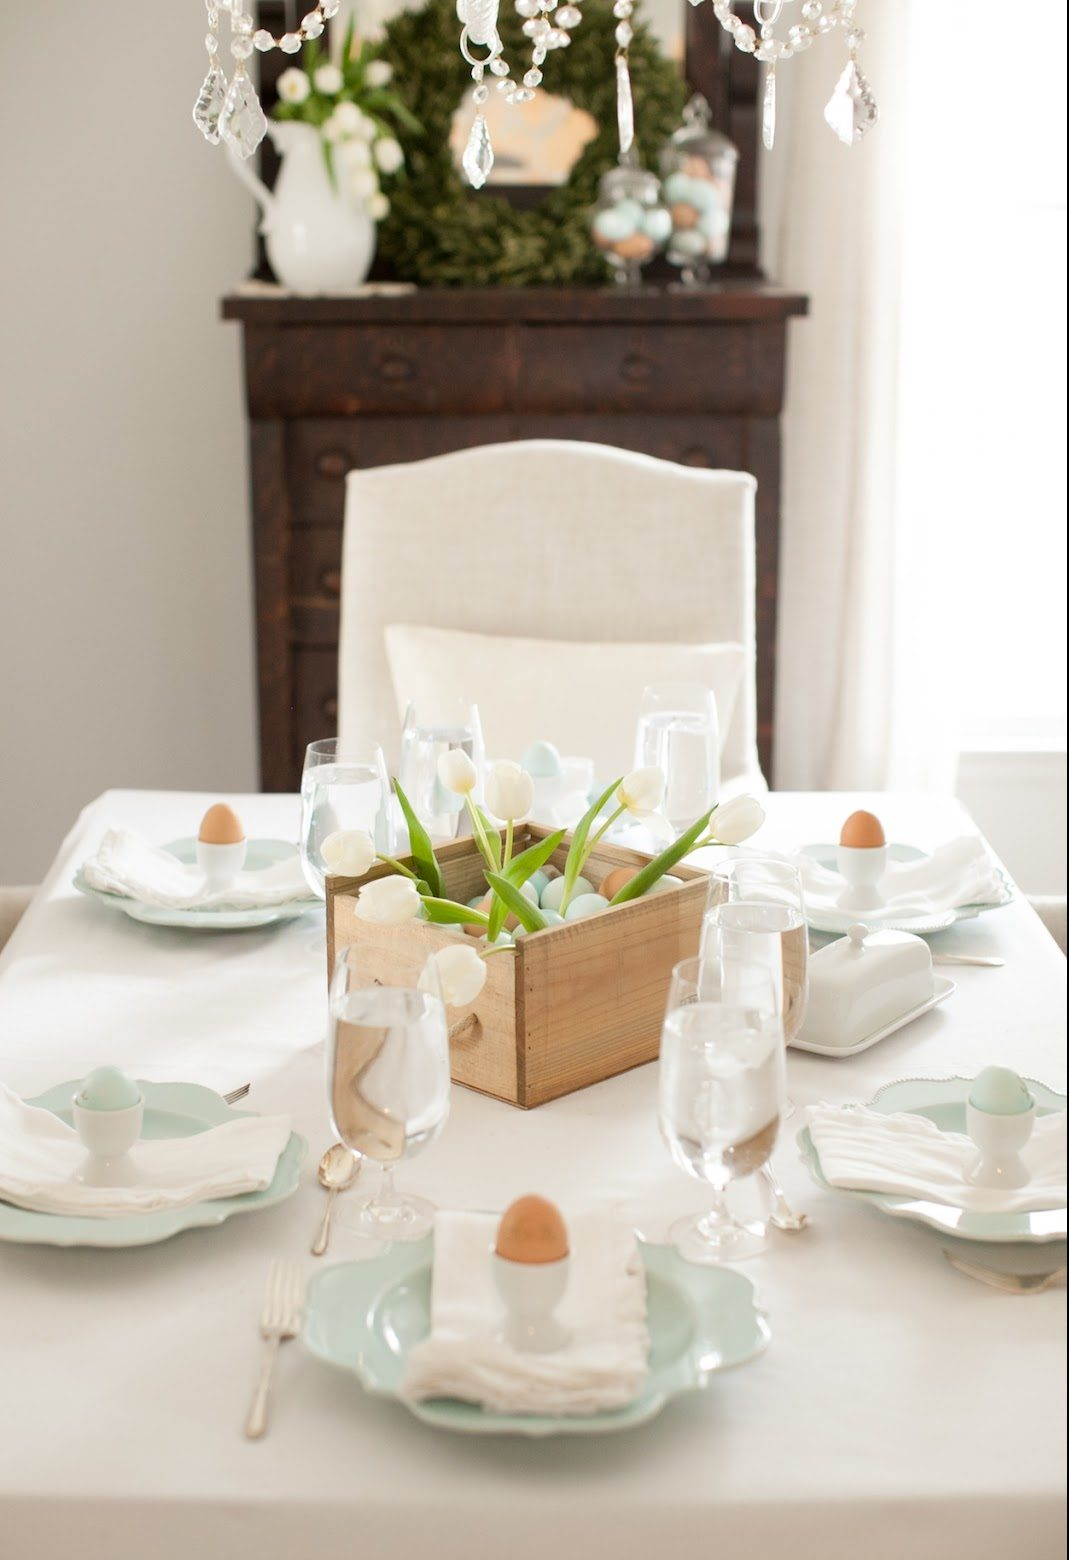 5 Tips for Setting Up the Perfect Easter Table 4